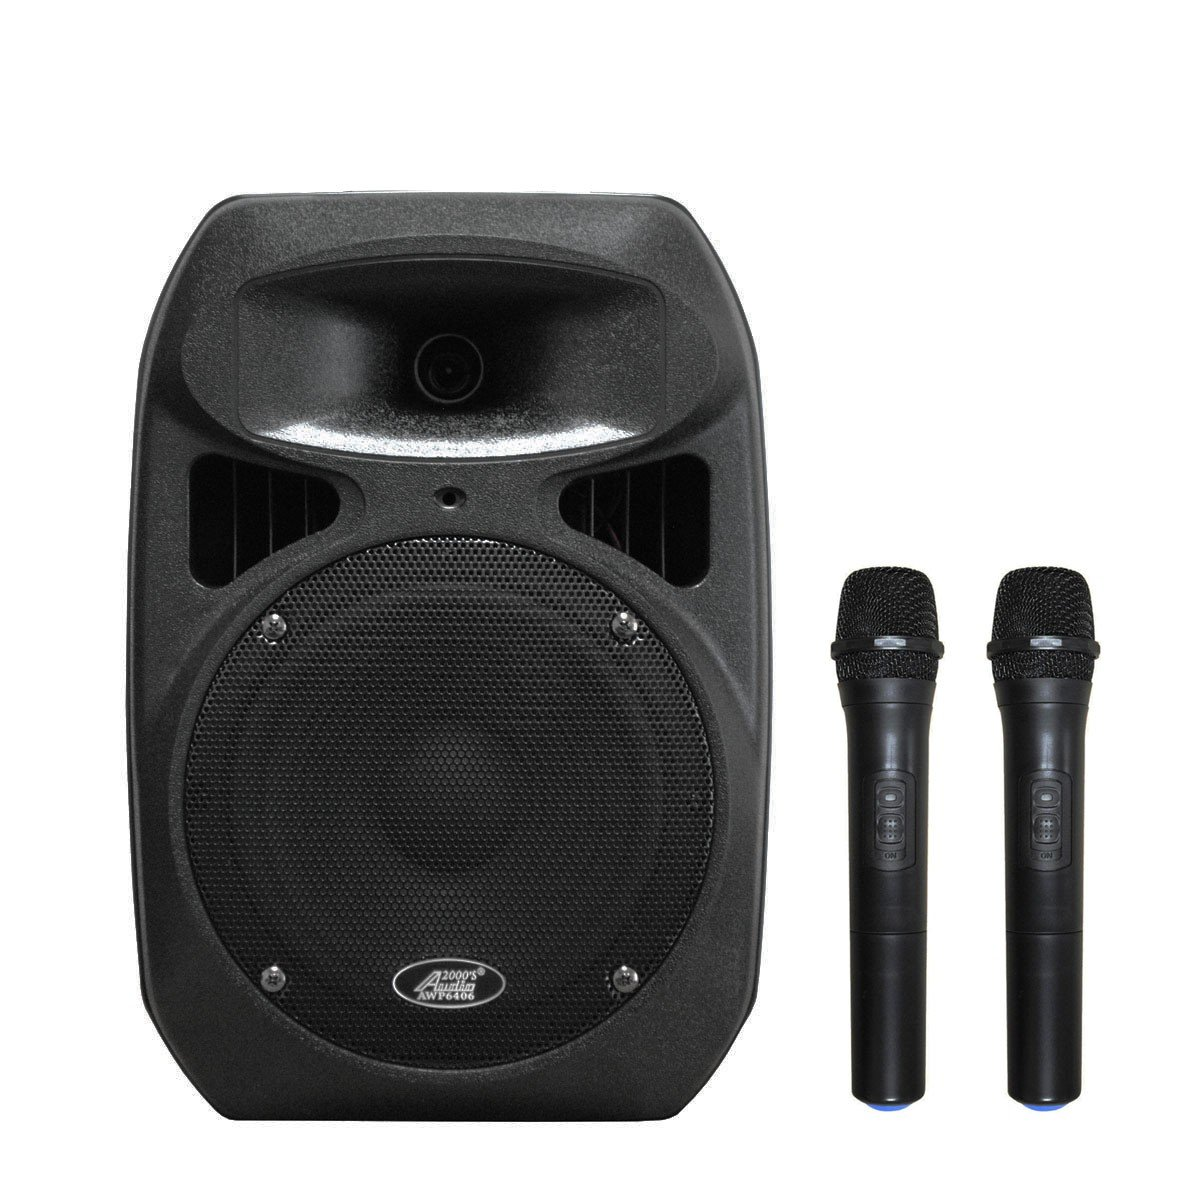 Audio 2000s AWP6408H 50W 8'' Dual Channel Wireless Microphone Portable PA System with 2 Handheld